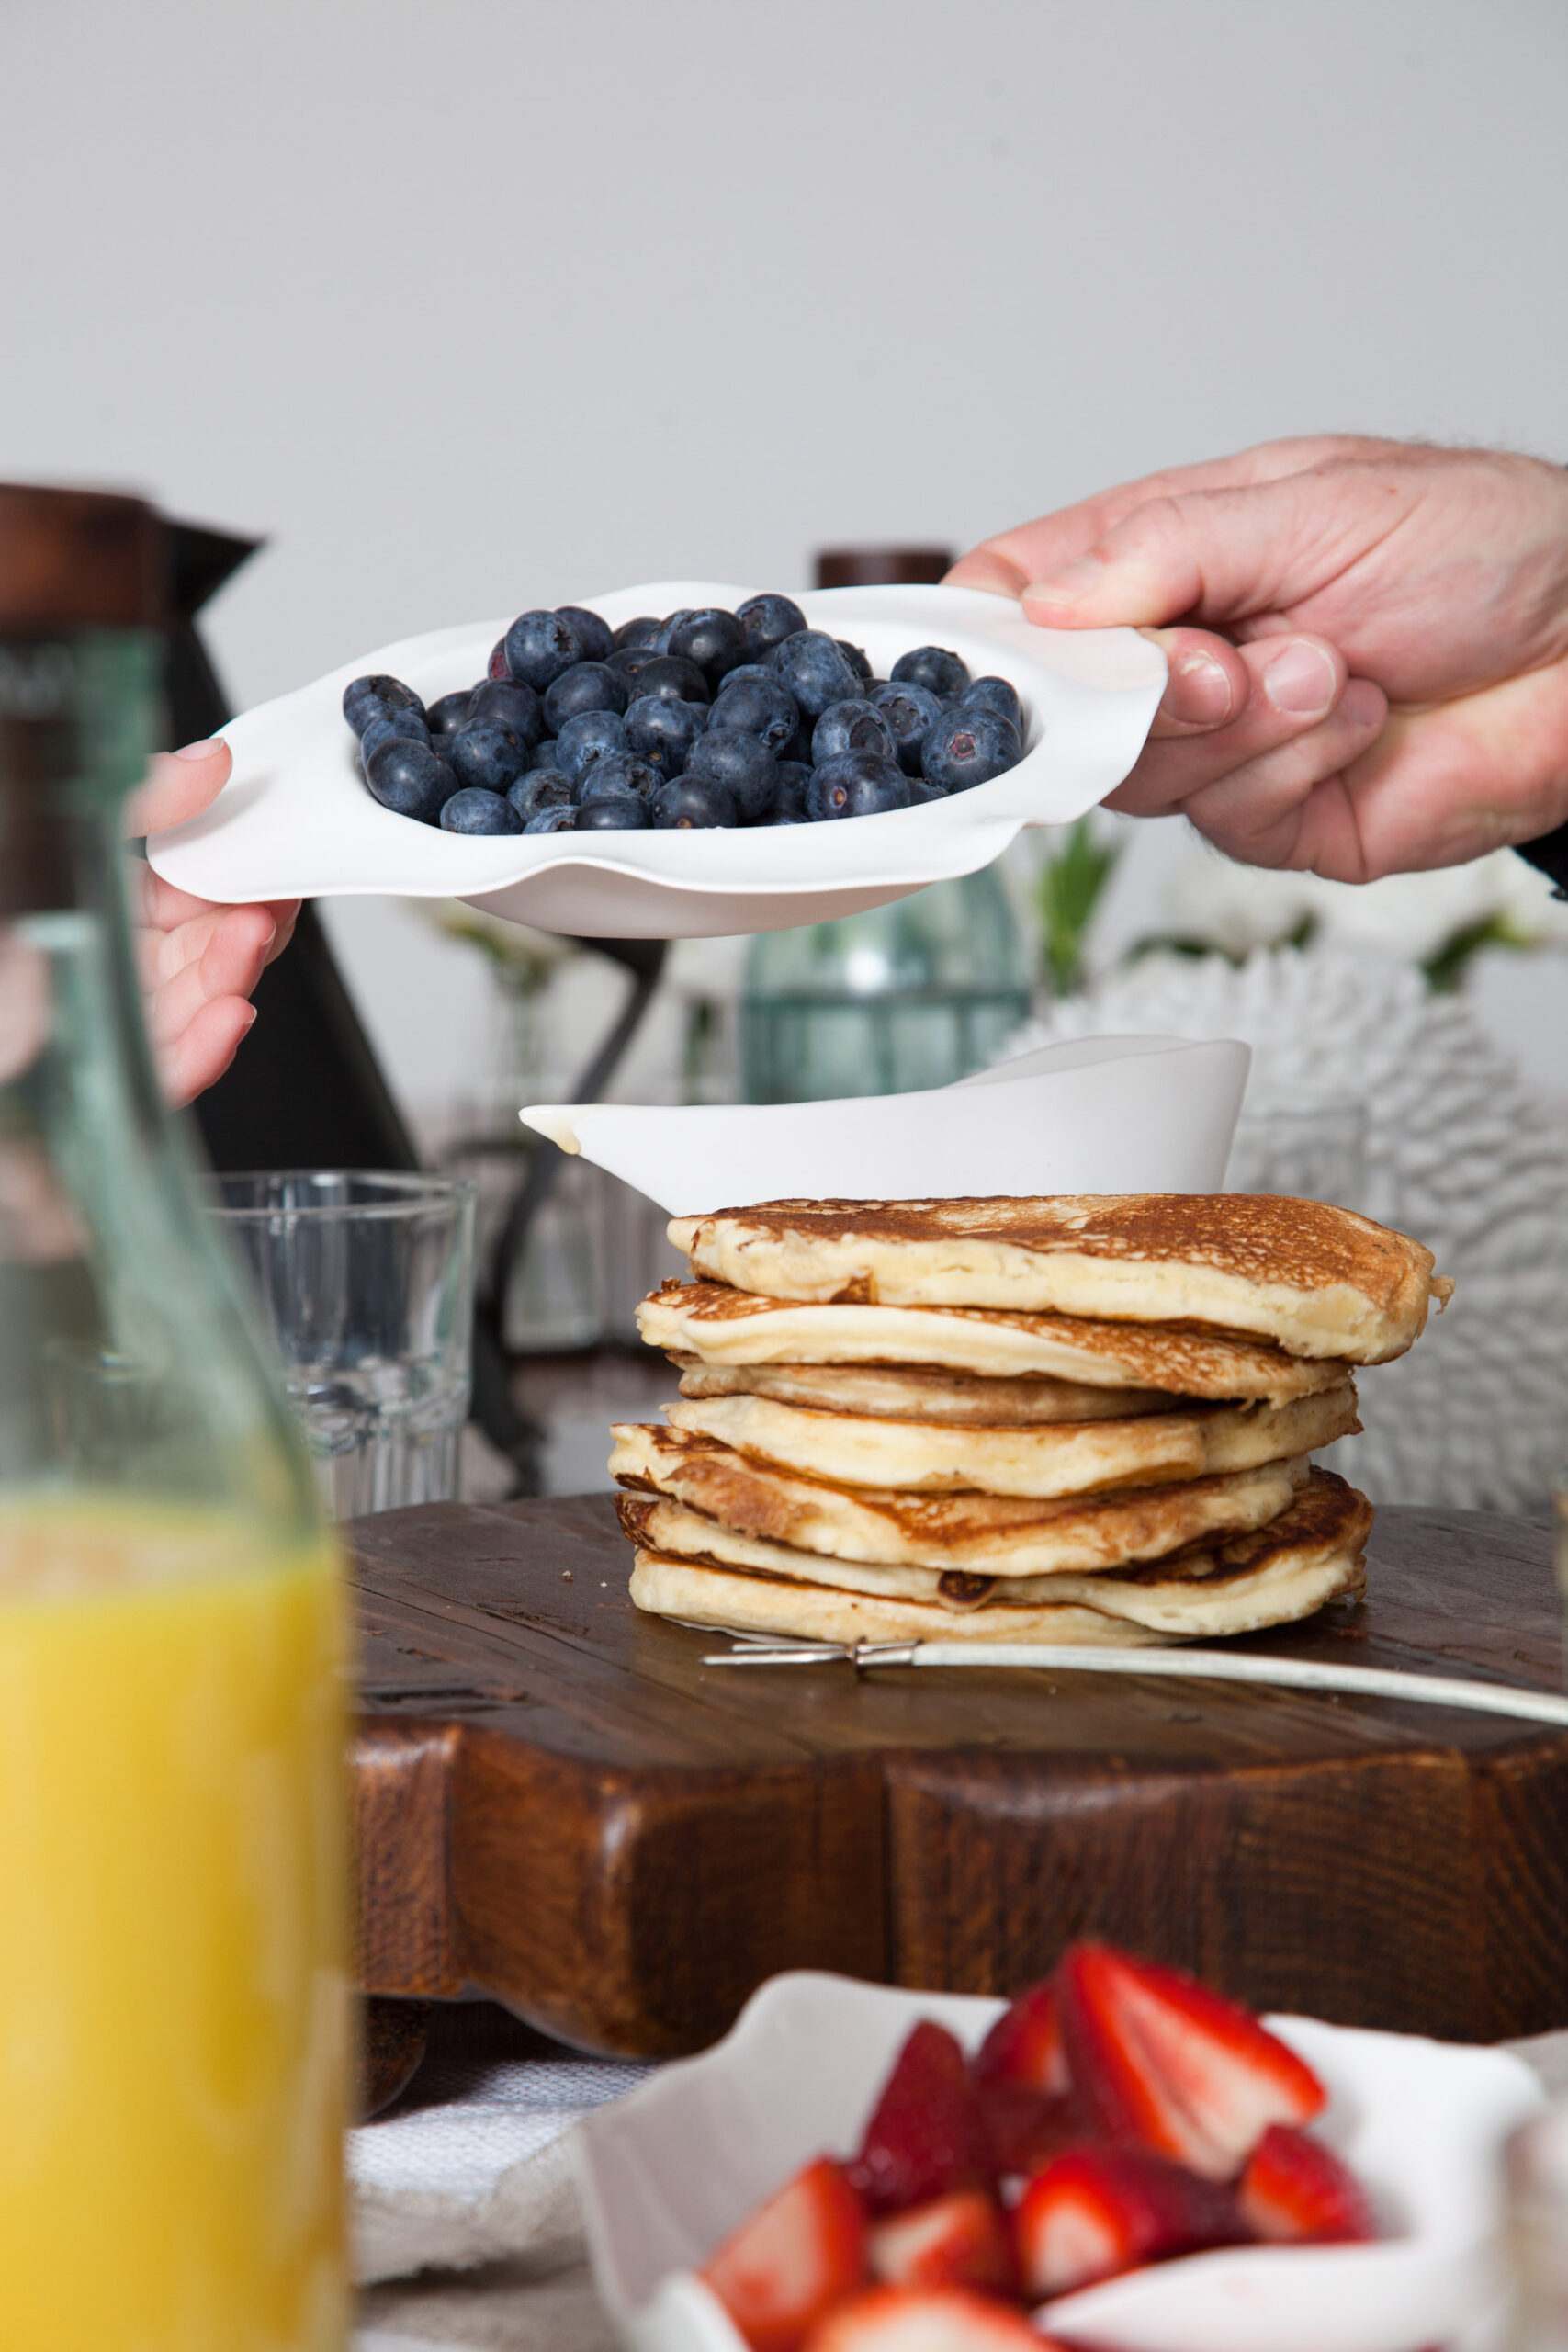 creative direction, lifestyle brand photography, food and prop styling. Creative photo of hands over table with pancakes.